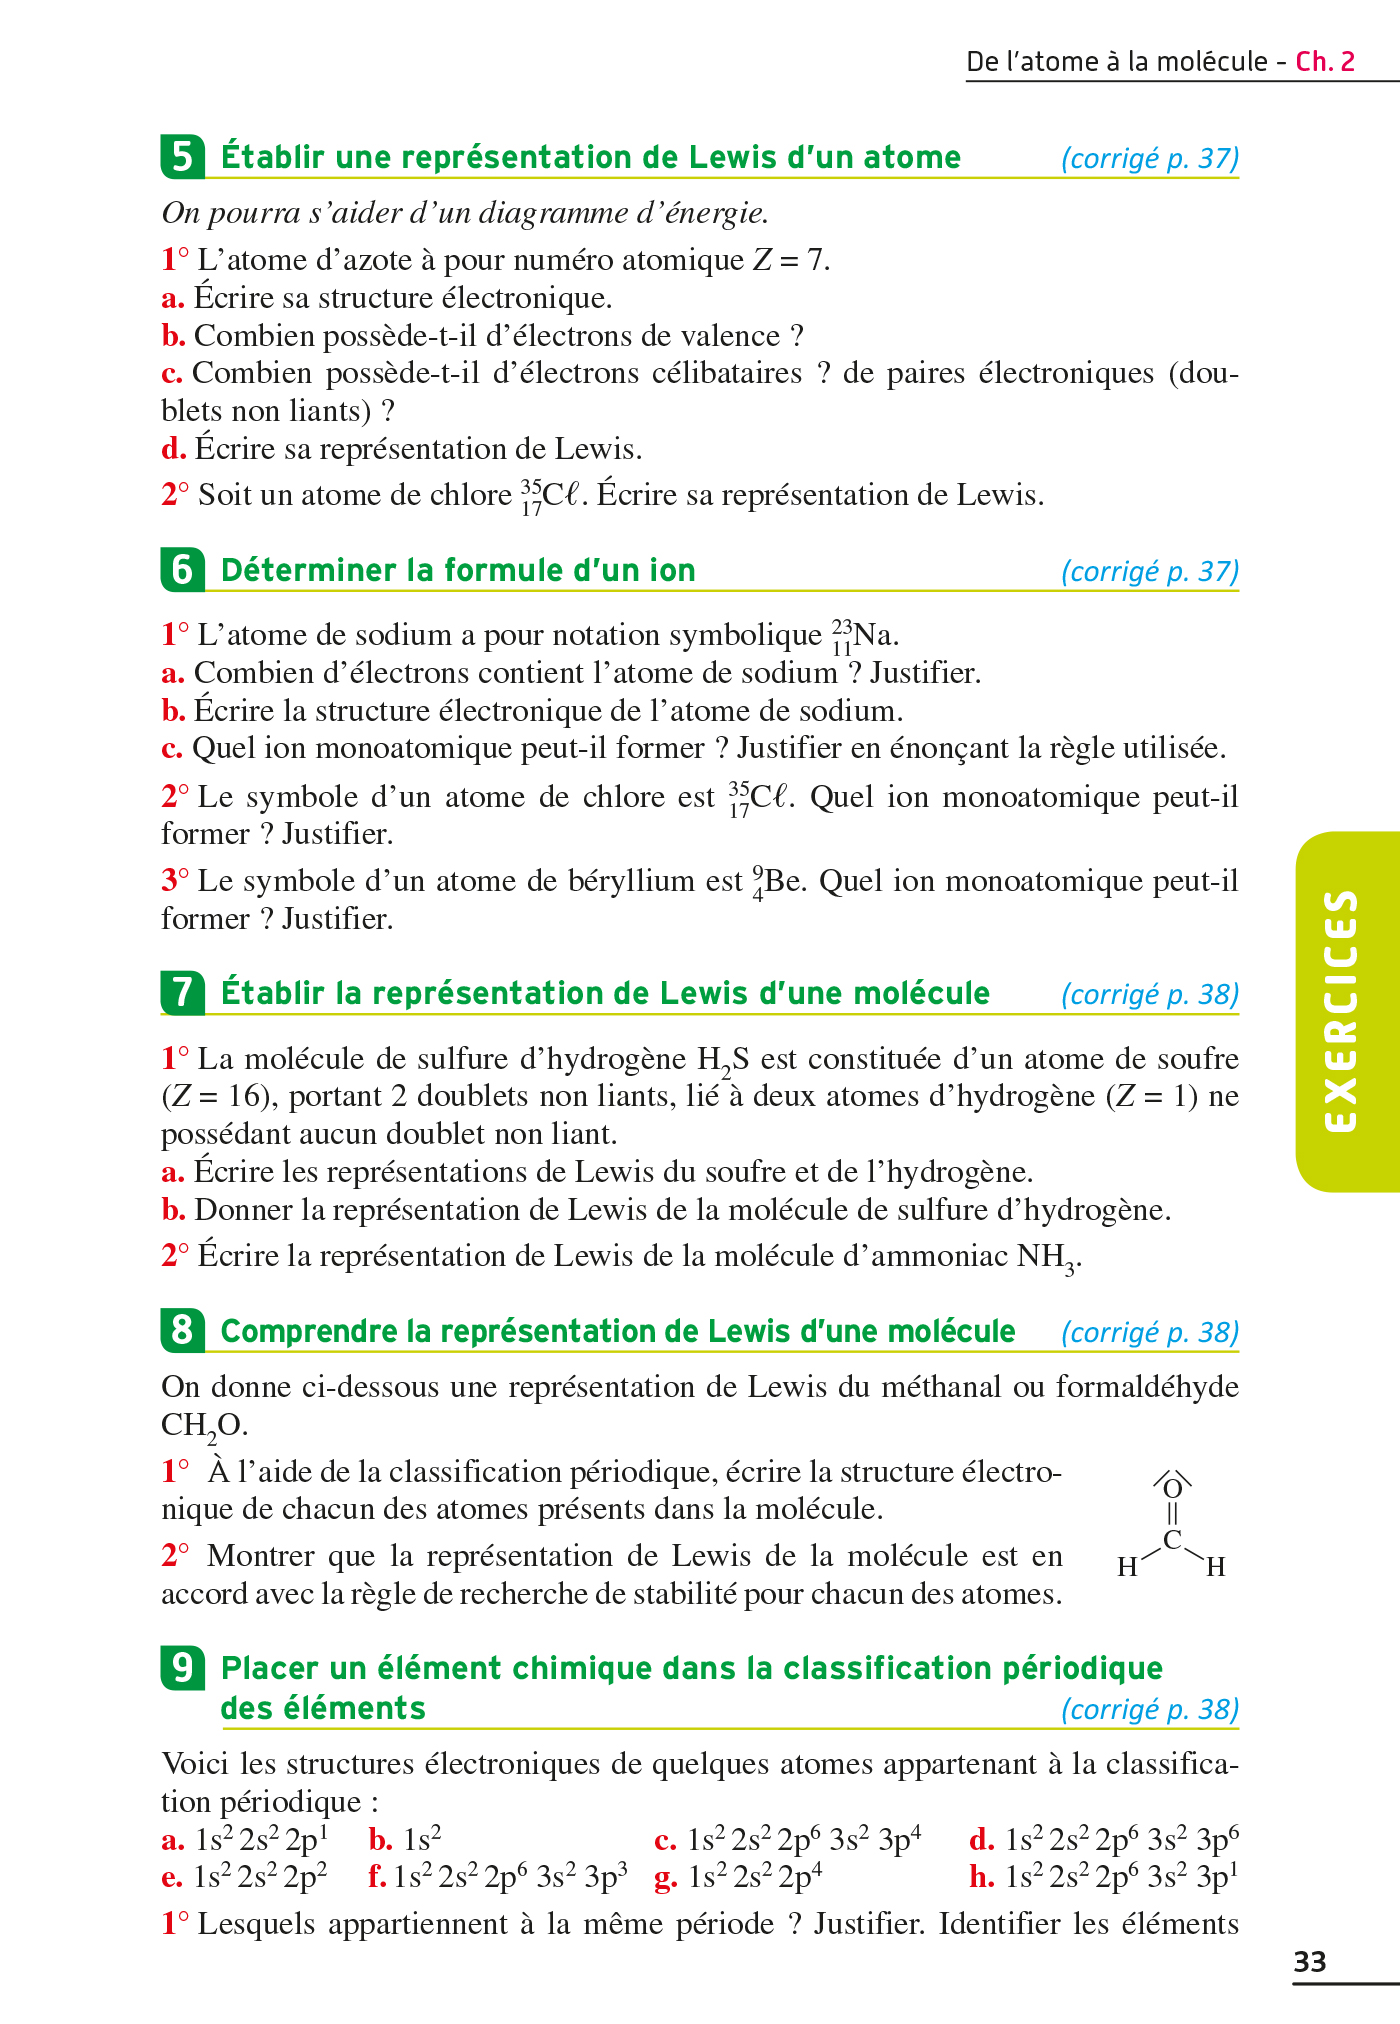 Exos Resolus Physique Chimie 2nde Hachette Fr